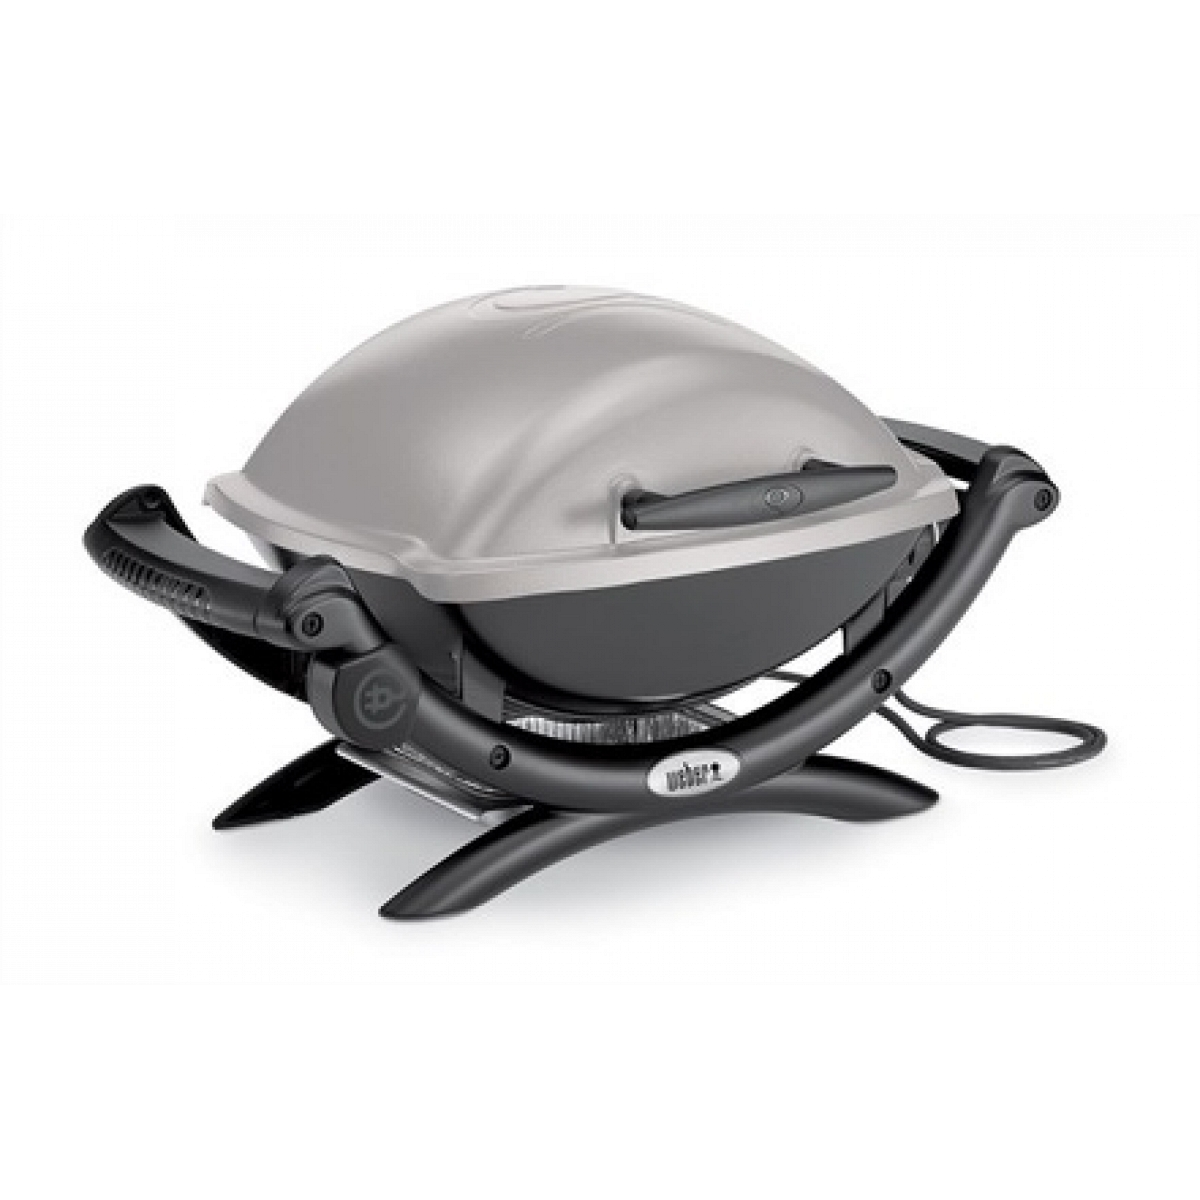 electric barbecue weber q1400 with apron to grill weber. Black Bedroom Furniture Sets. Home Design Ideas